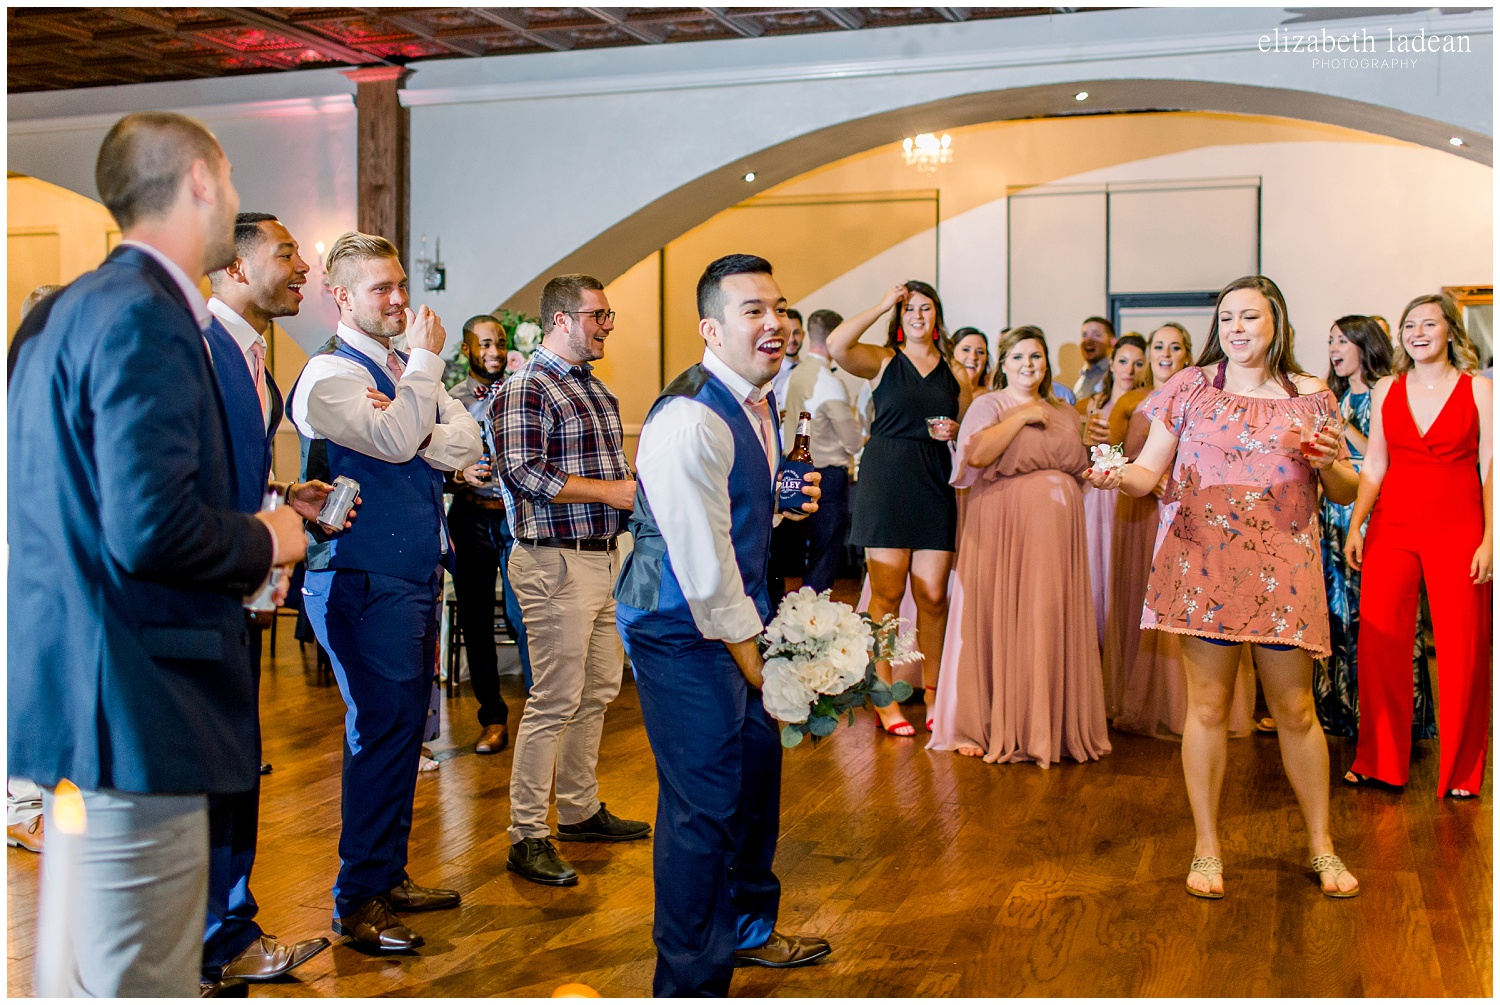 -behind-the-scenes-of-a-wedding-photographer-2018-elizabeth-ladean-photography-photo_3510.jpg